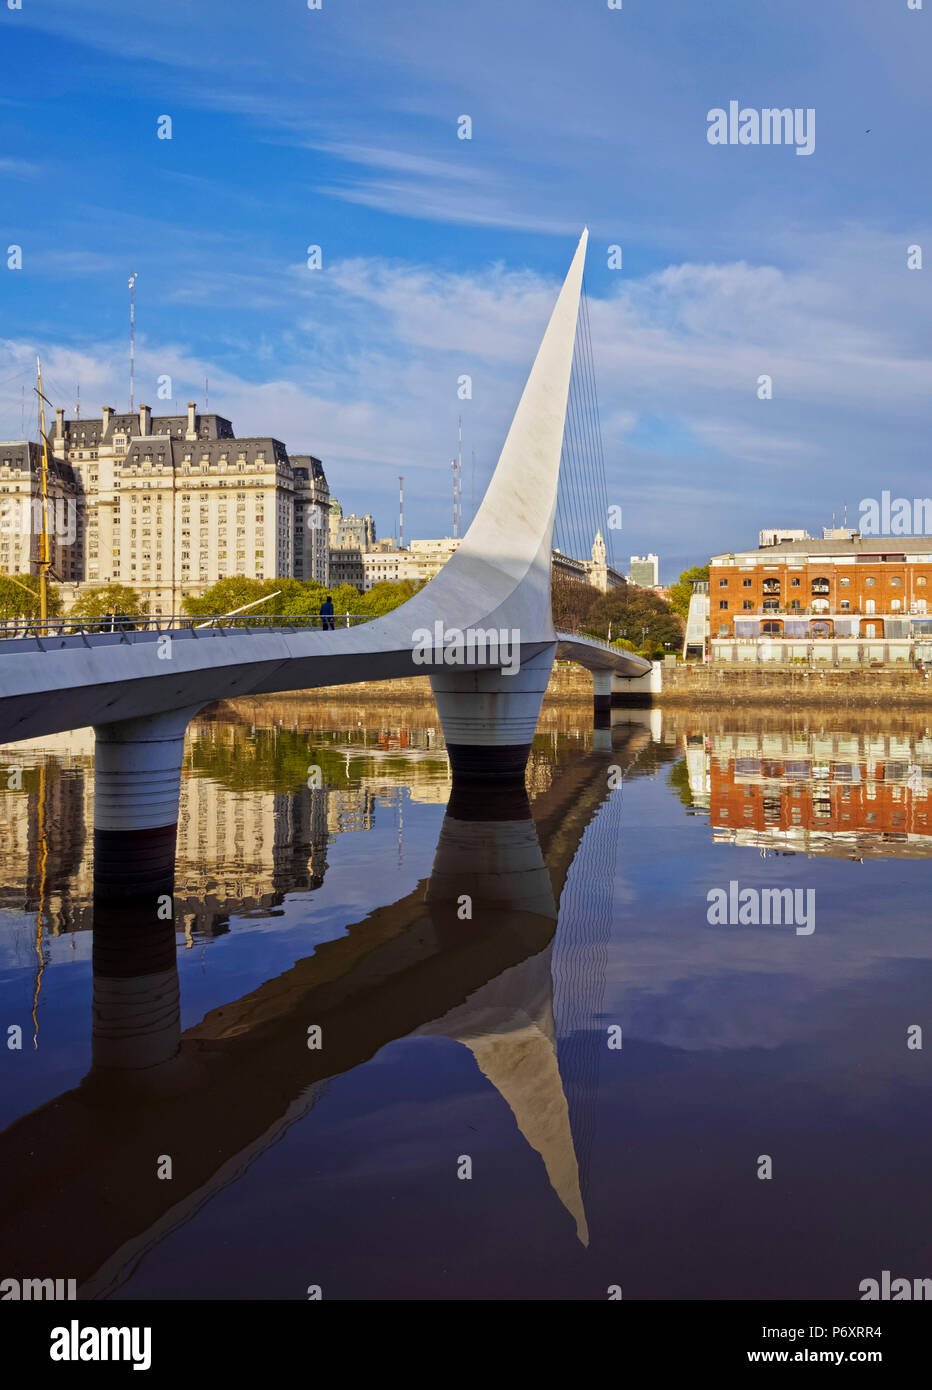 Argentina, Buenos Aires Province, City of Buenos Aires, View of Puente de la Mujer in Puerto Madero. - Stock Image